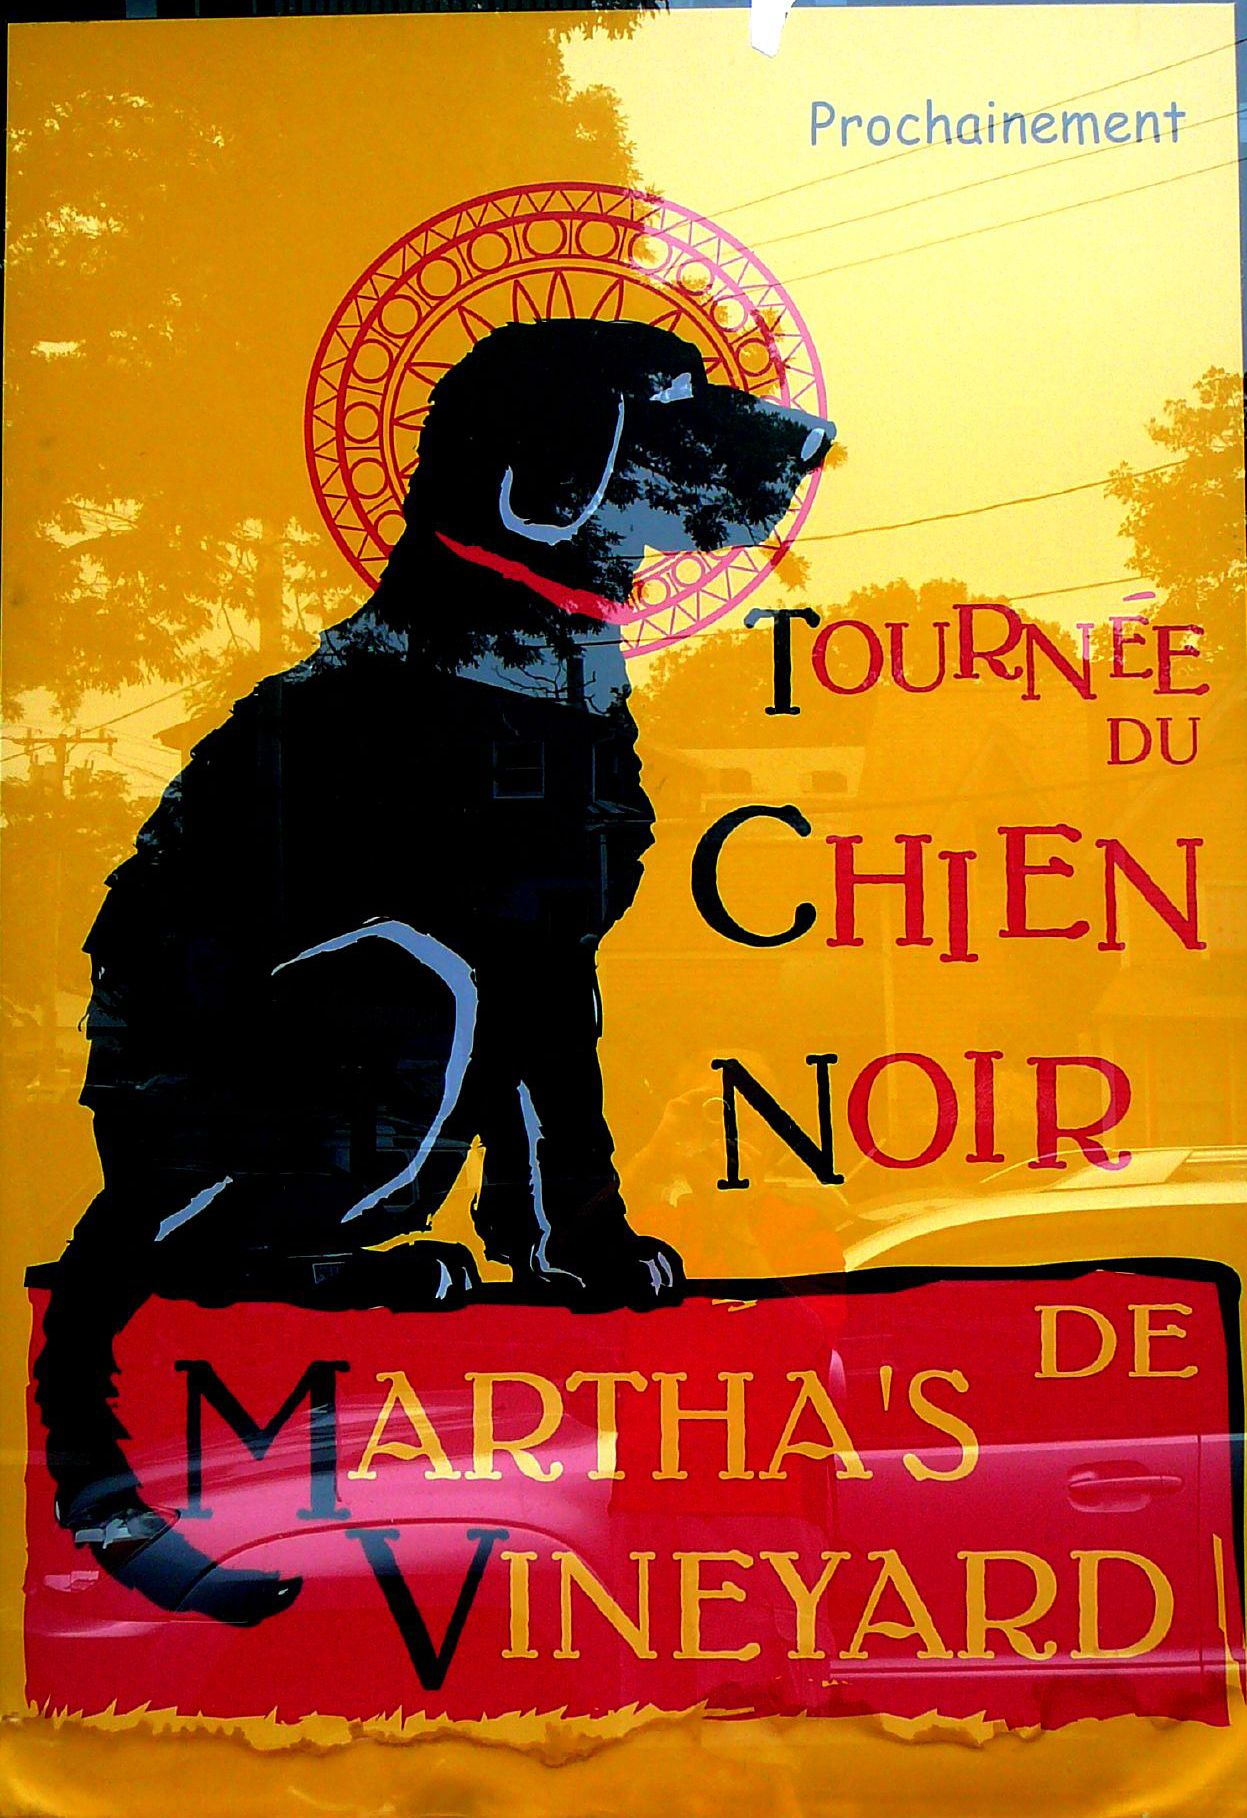 Black Dog Poster Marthas Vinyard Vintage Travel Posters Dog